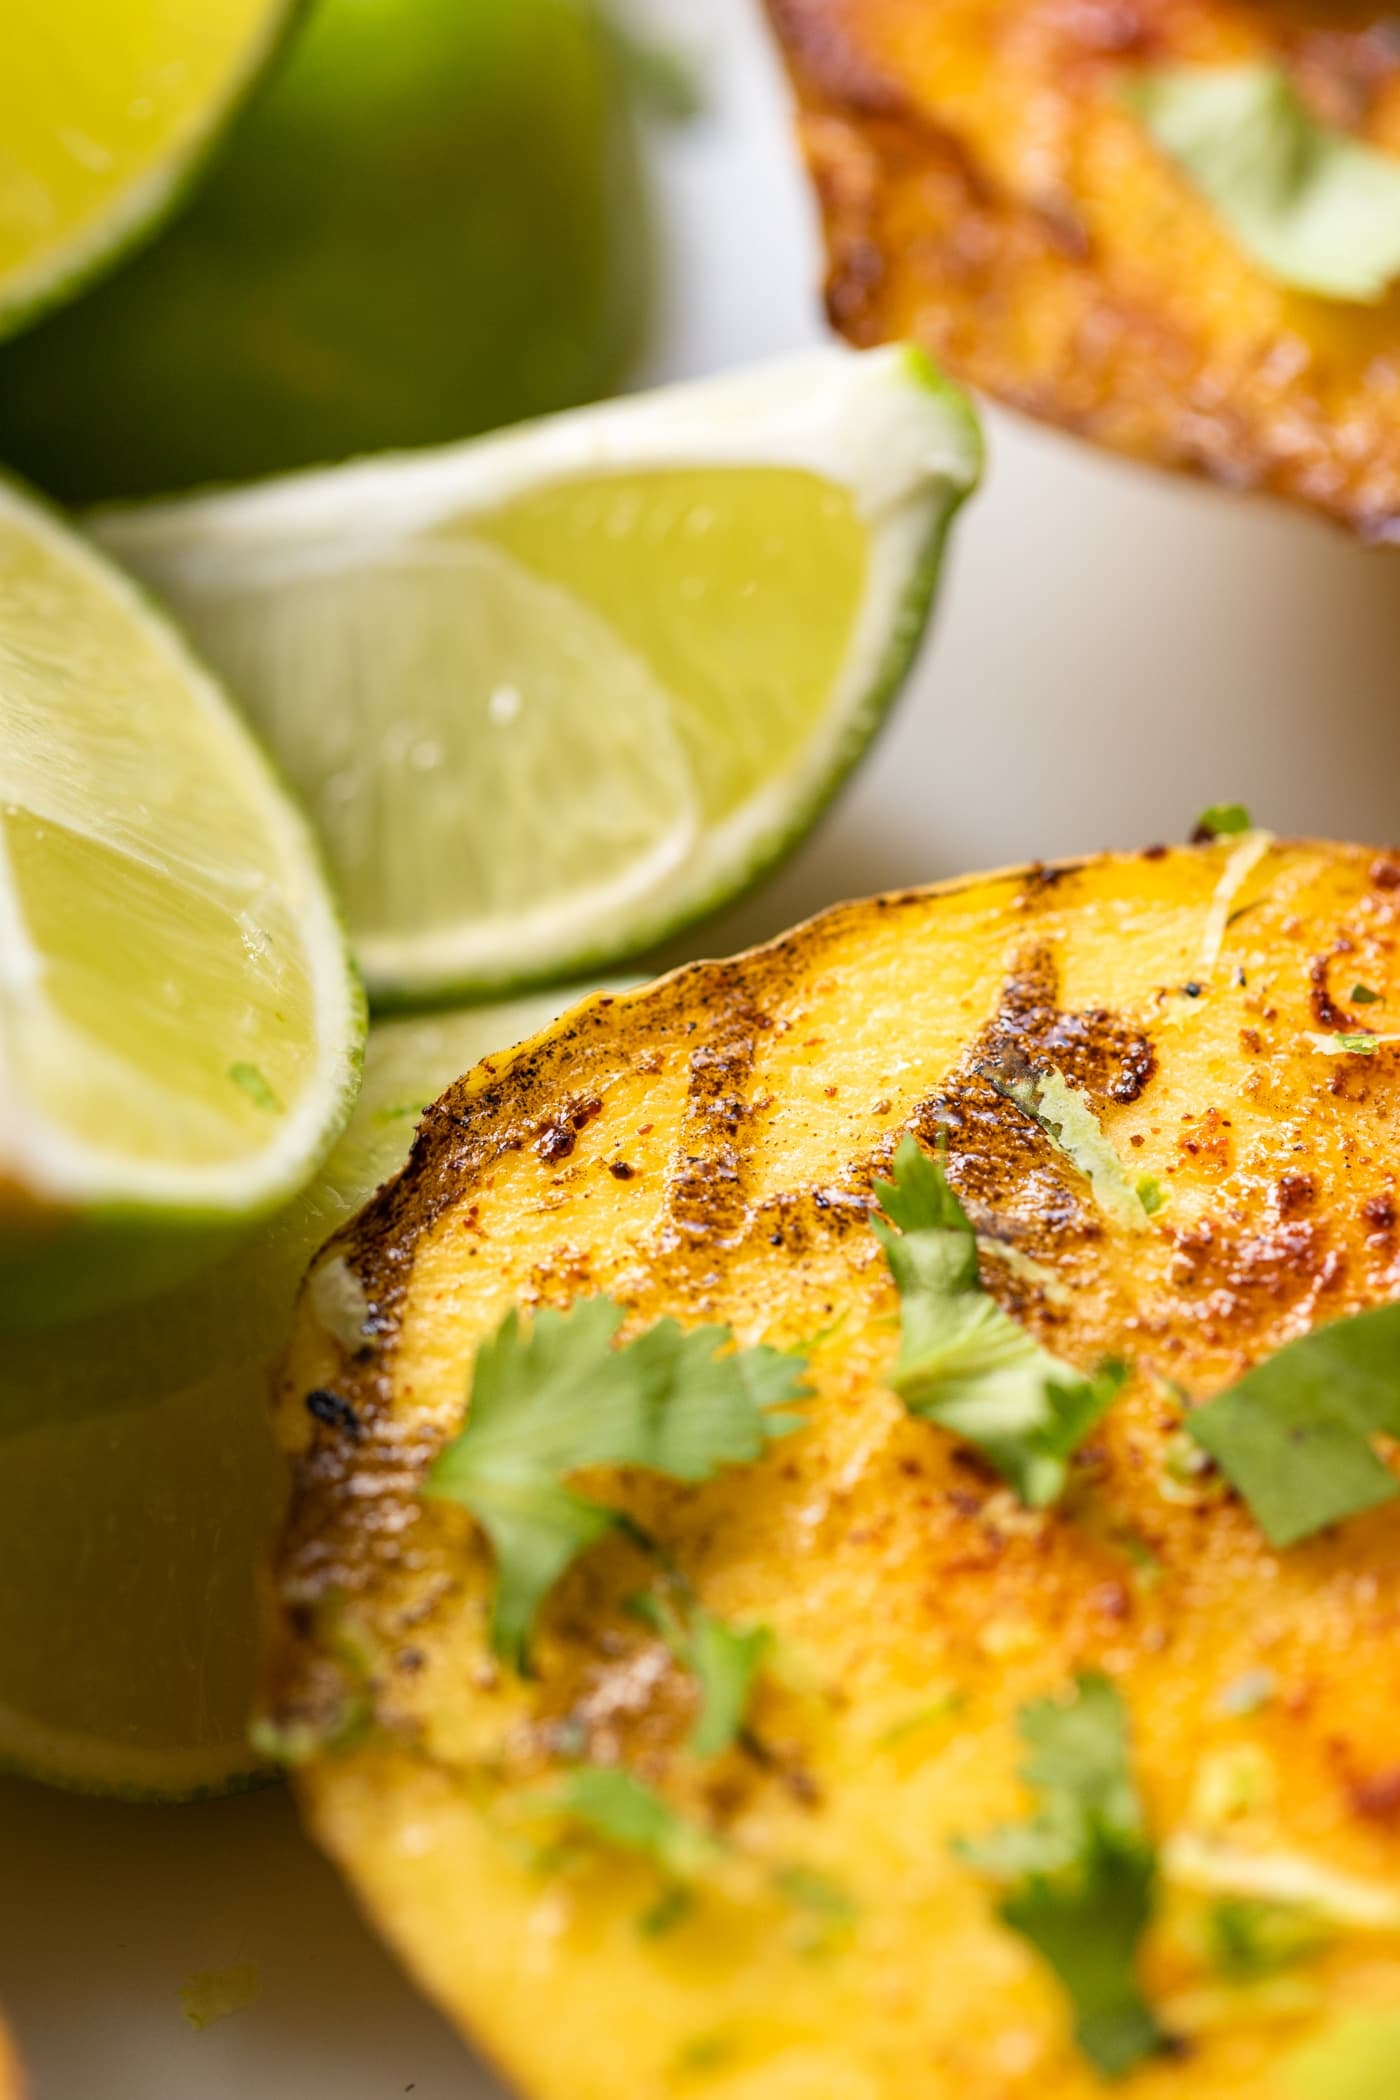 Close up view of mango sitting on white surface with limes and topped with cilantro and spices with grill marks